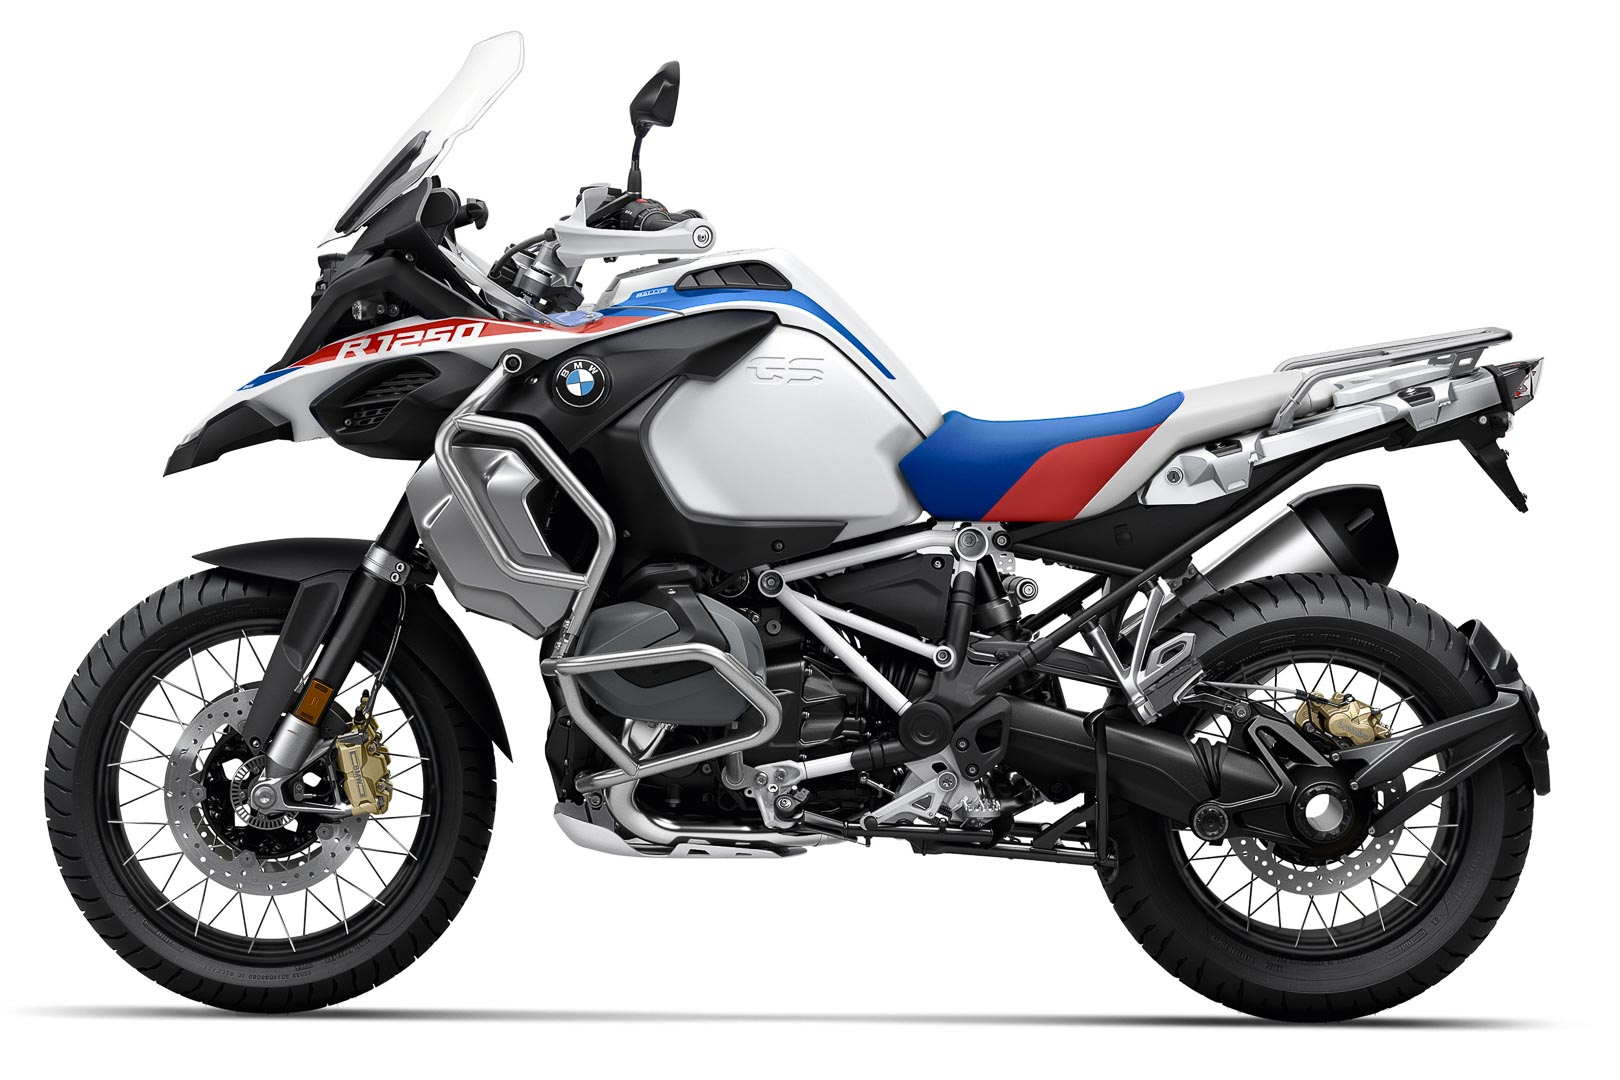 2021 BMW R 1250 GS Adventure First Look: Price